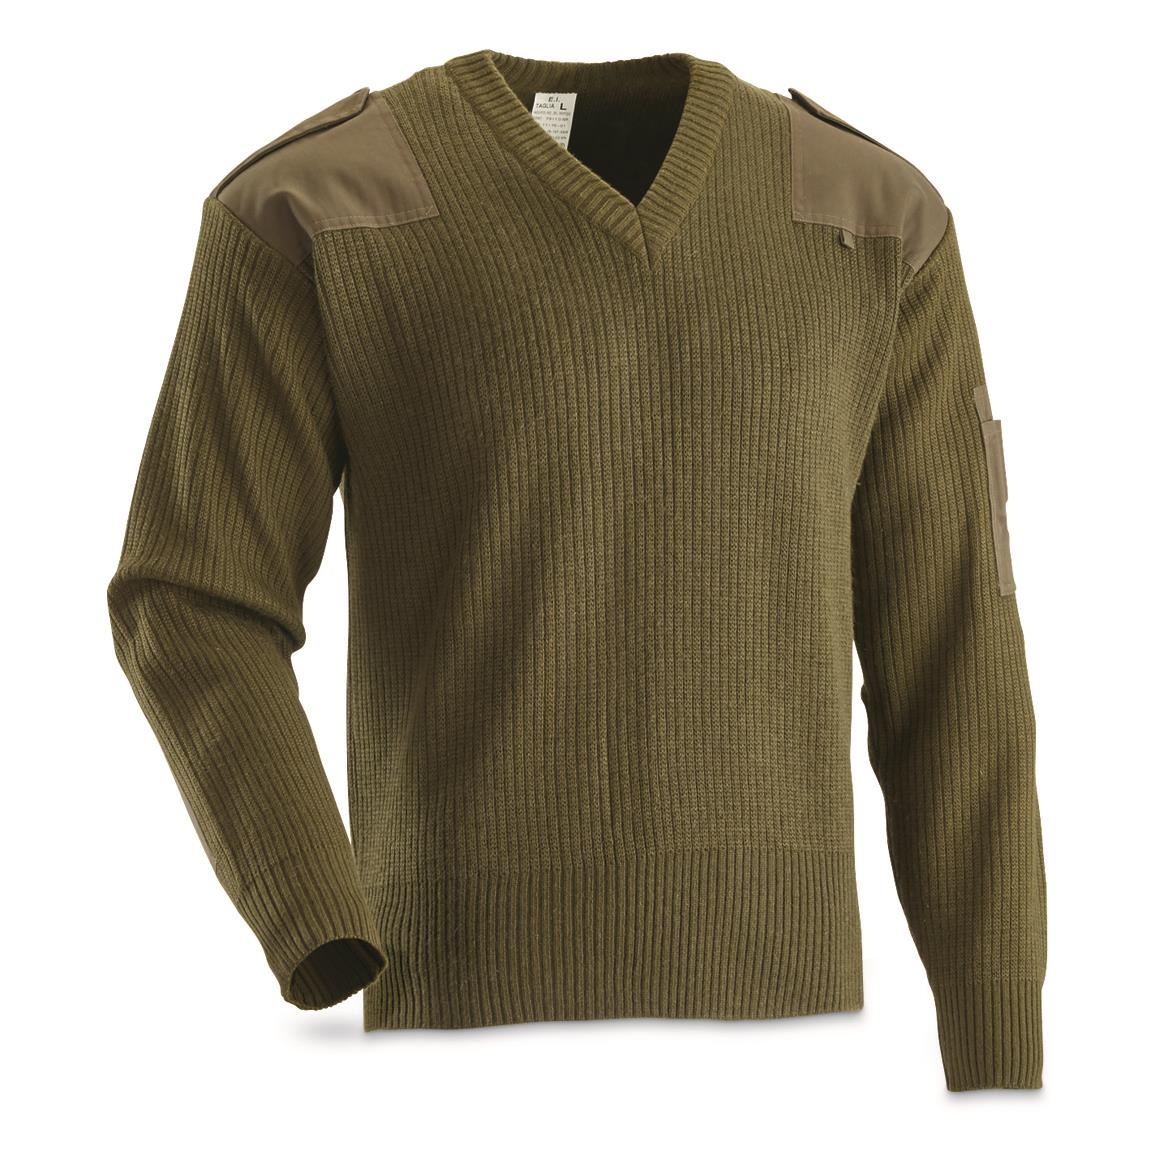 Italian Military Surplus V-neck Wool Blend Commando Sweater, New